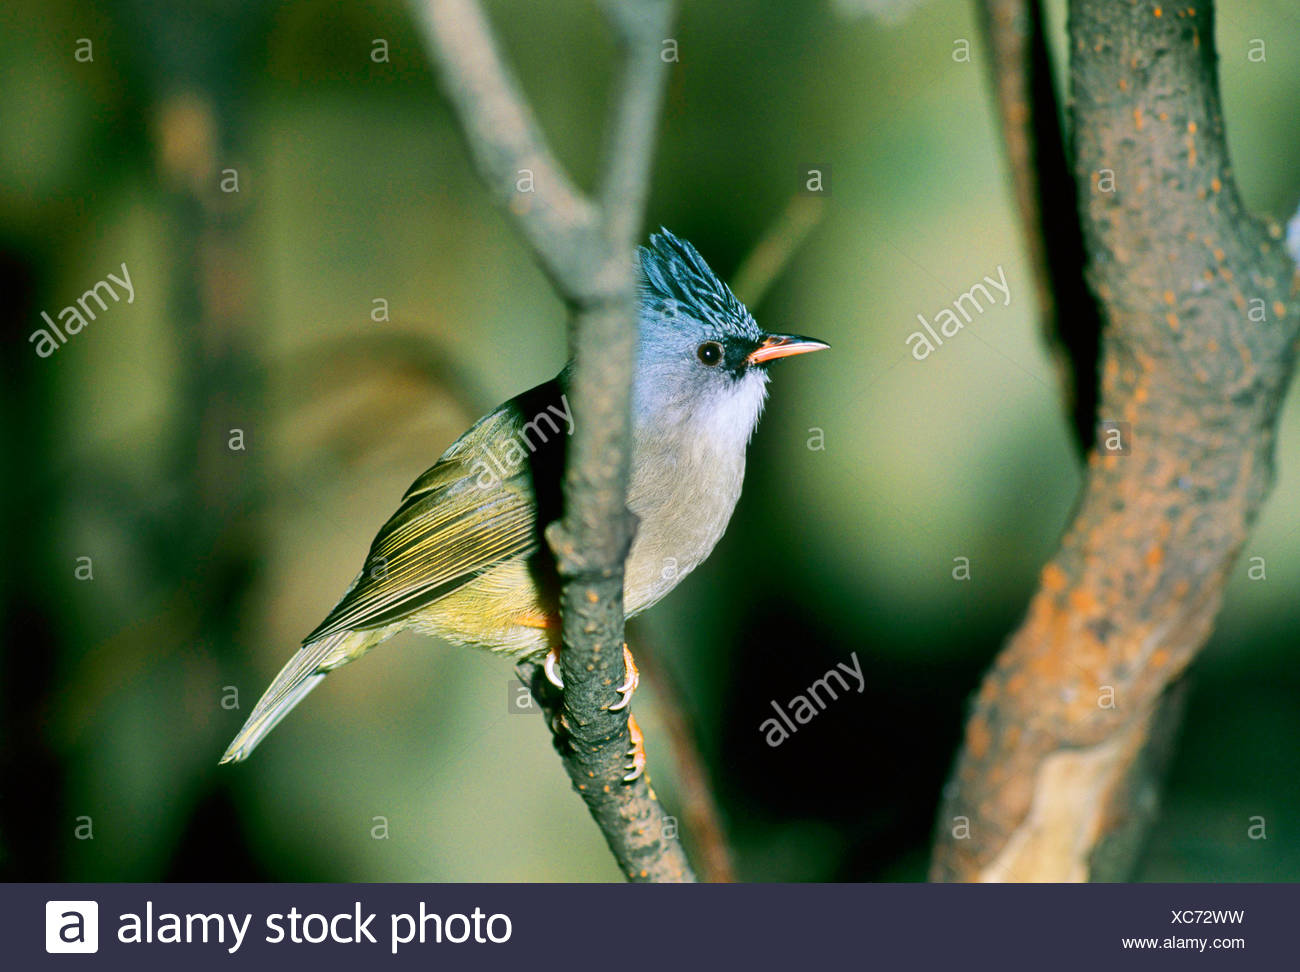 black-chinned yuhina (Yuhina nigrimenta), sits on a branch in a tree - Stock Image